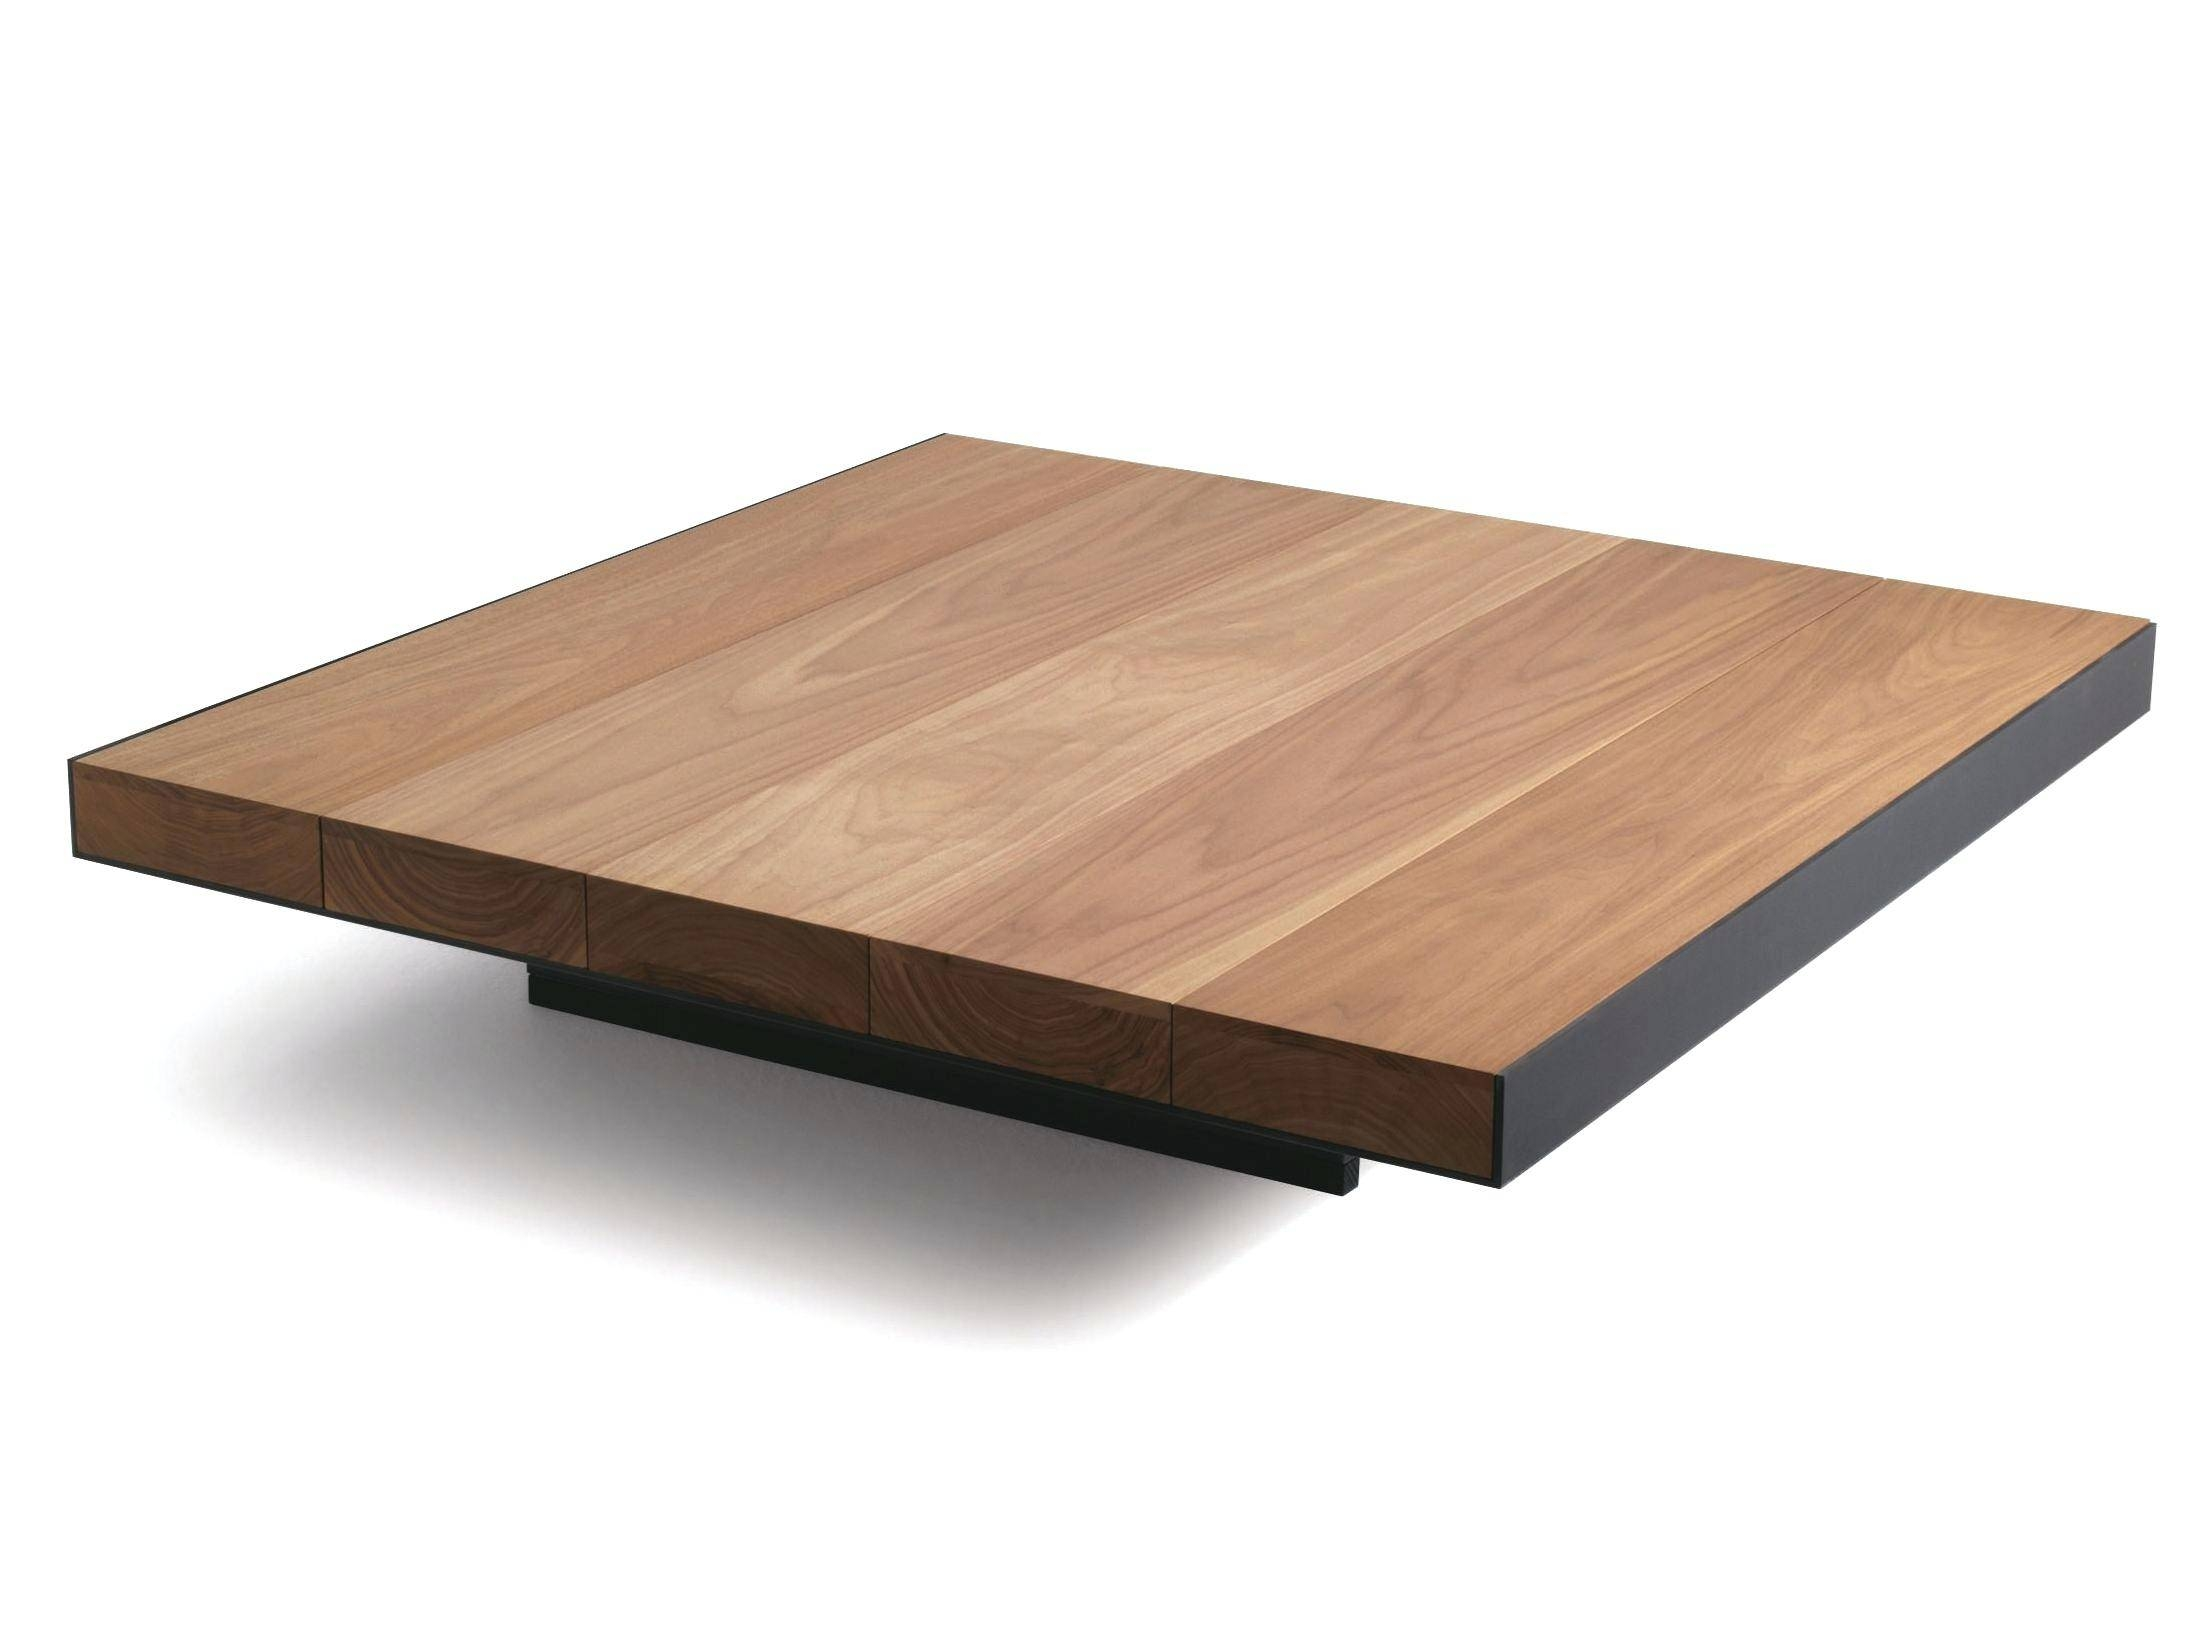 Coffee Table ~ Low Coffee Tables Square Orp J11 S The Modena with regard to Large Low Coffee Tables (Image 2 of 15)